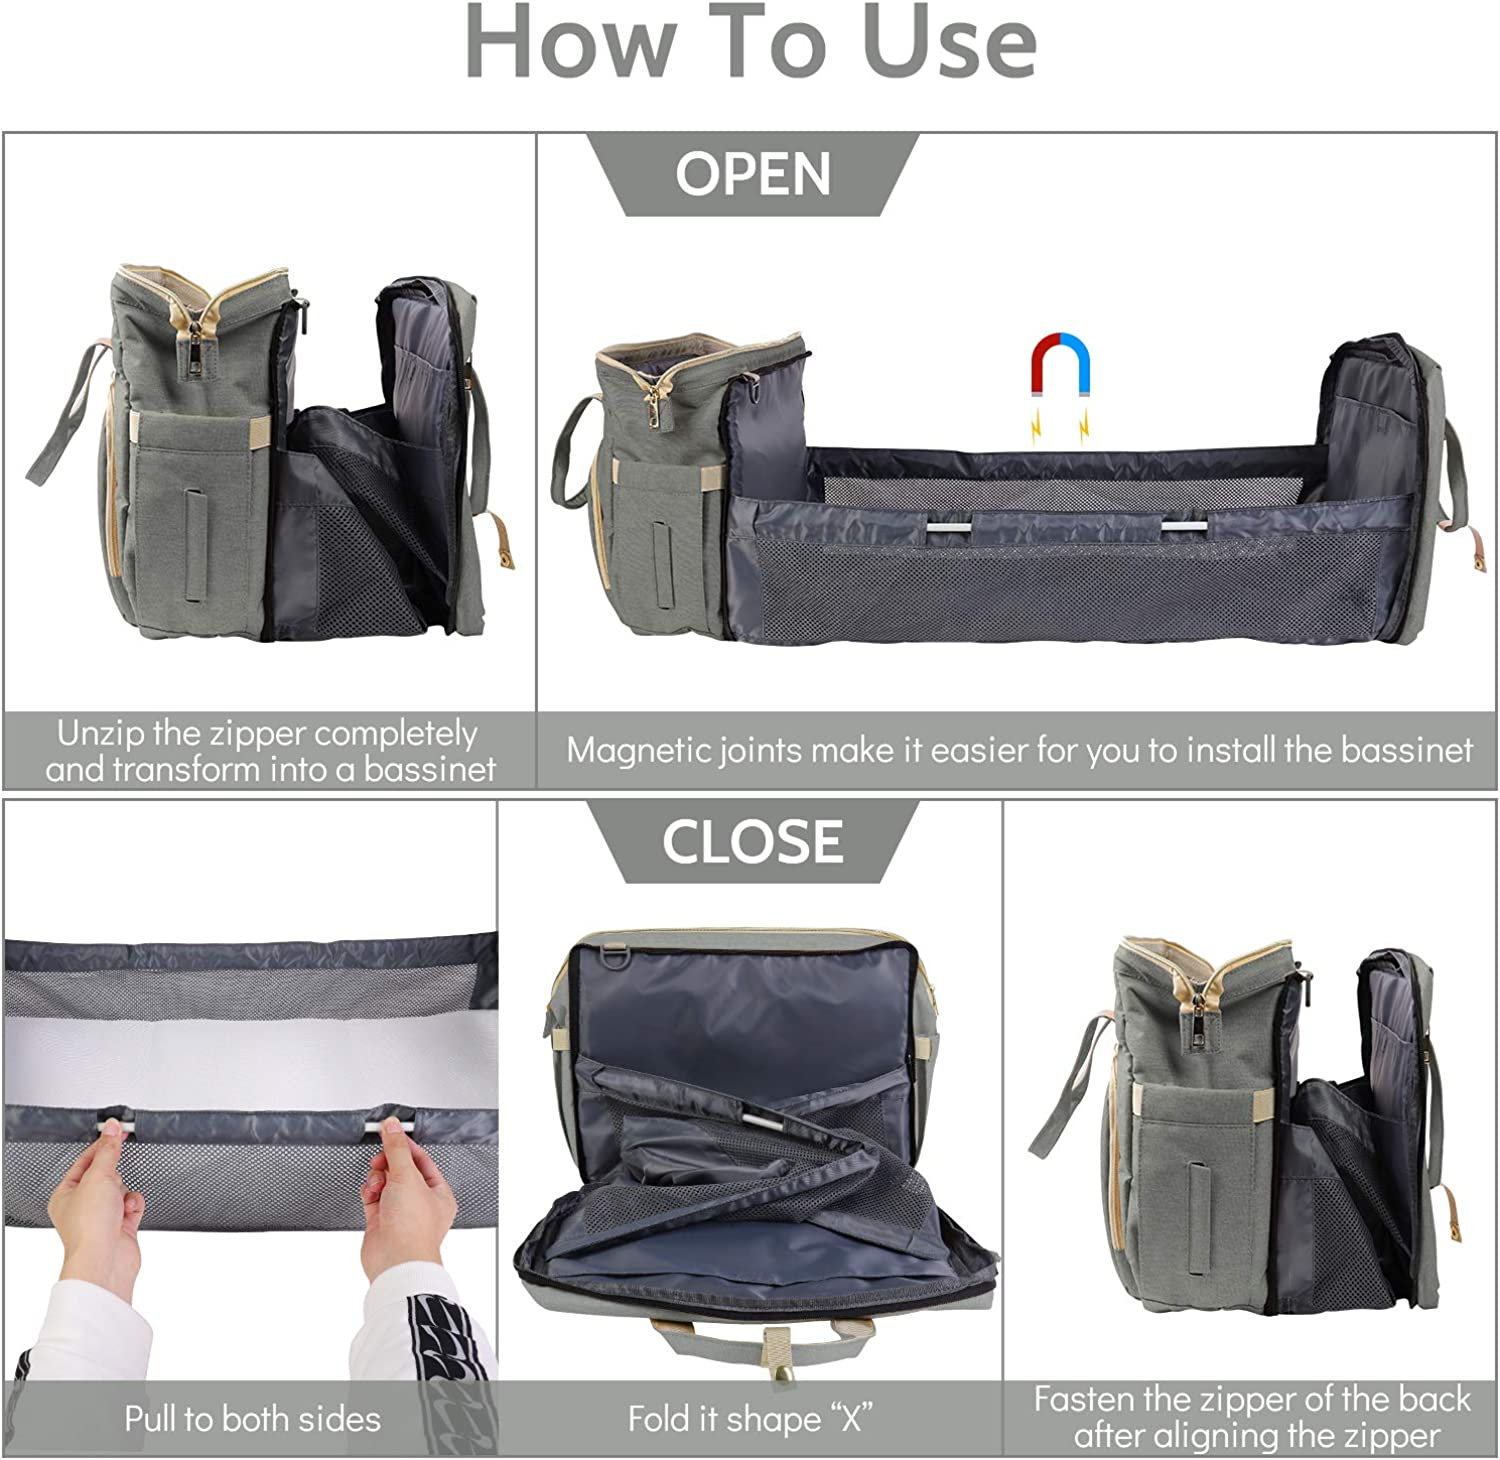 For Parents Bosixty Diaper Bag Backpack,Multifunctional Portable Foldable Cot Bed,Waterproof Maternity Nappy Bag Travel Bag With Changing Station